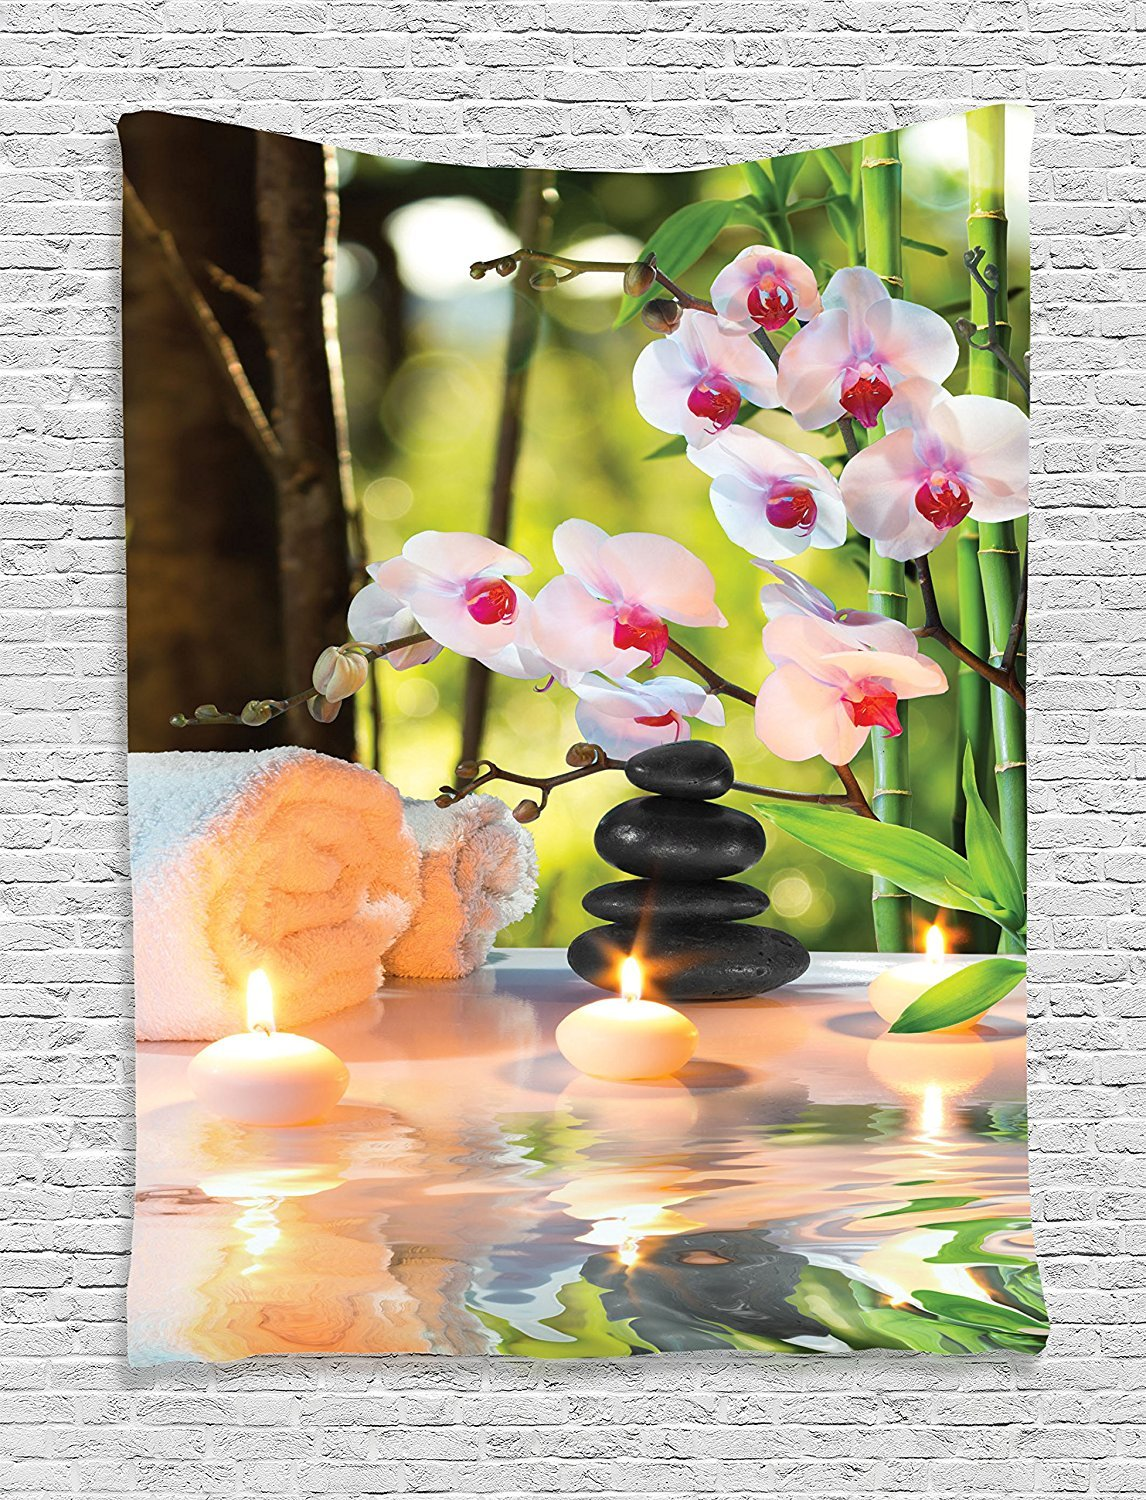 asddcdfdd Spa Decor Tapestry Wall Hanging, Massage Composition Spa With Candles, Orchids, Stones In Garden, Bedroom Living Room Dorm Decor, 60 W x 80 L Inches